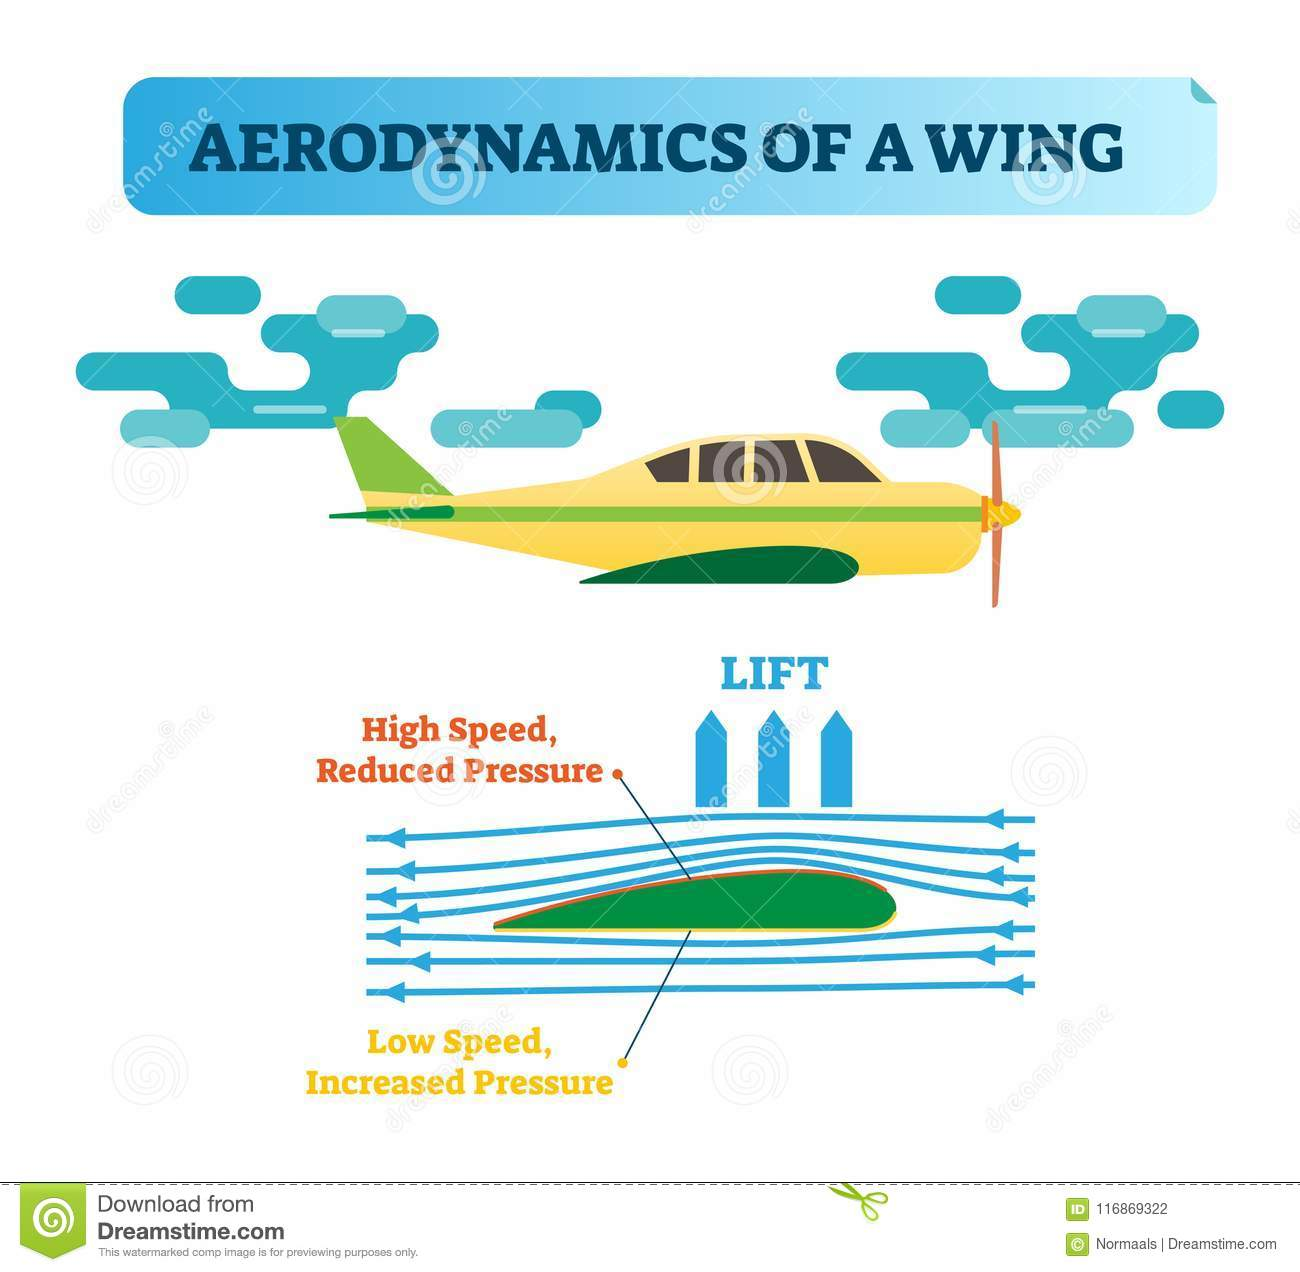 How the wing flies?Wing aerodynamics - air flow diagram with wind flow arrows and wing shape that creates air pressure difference.